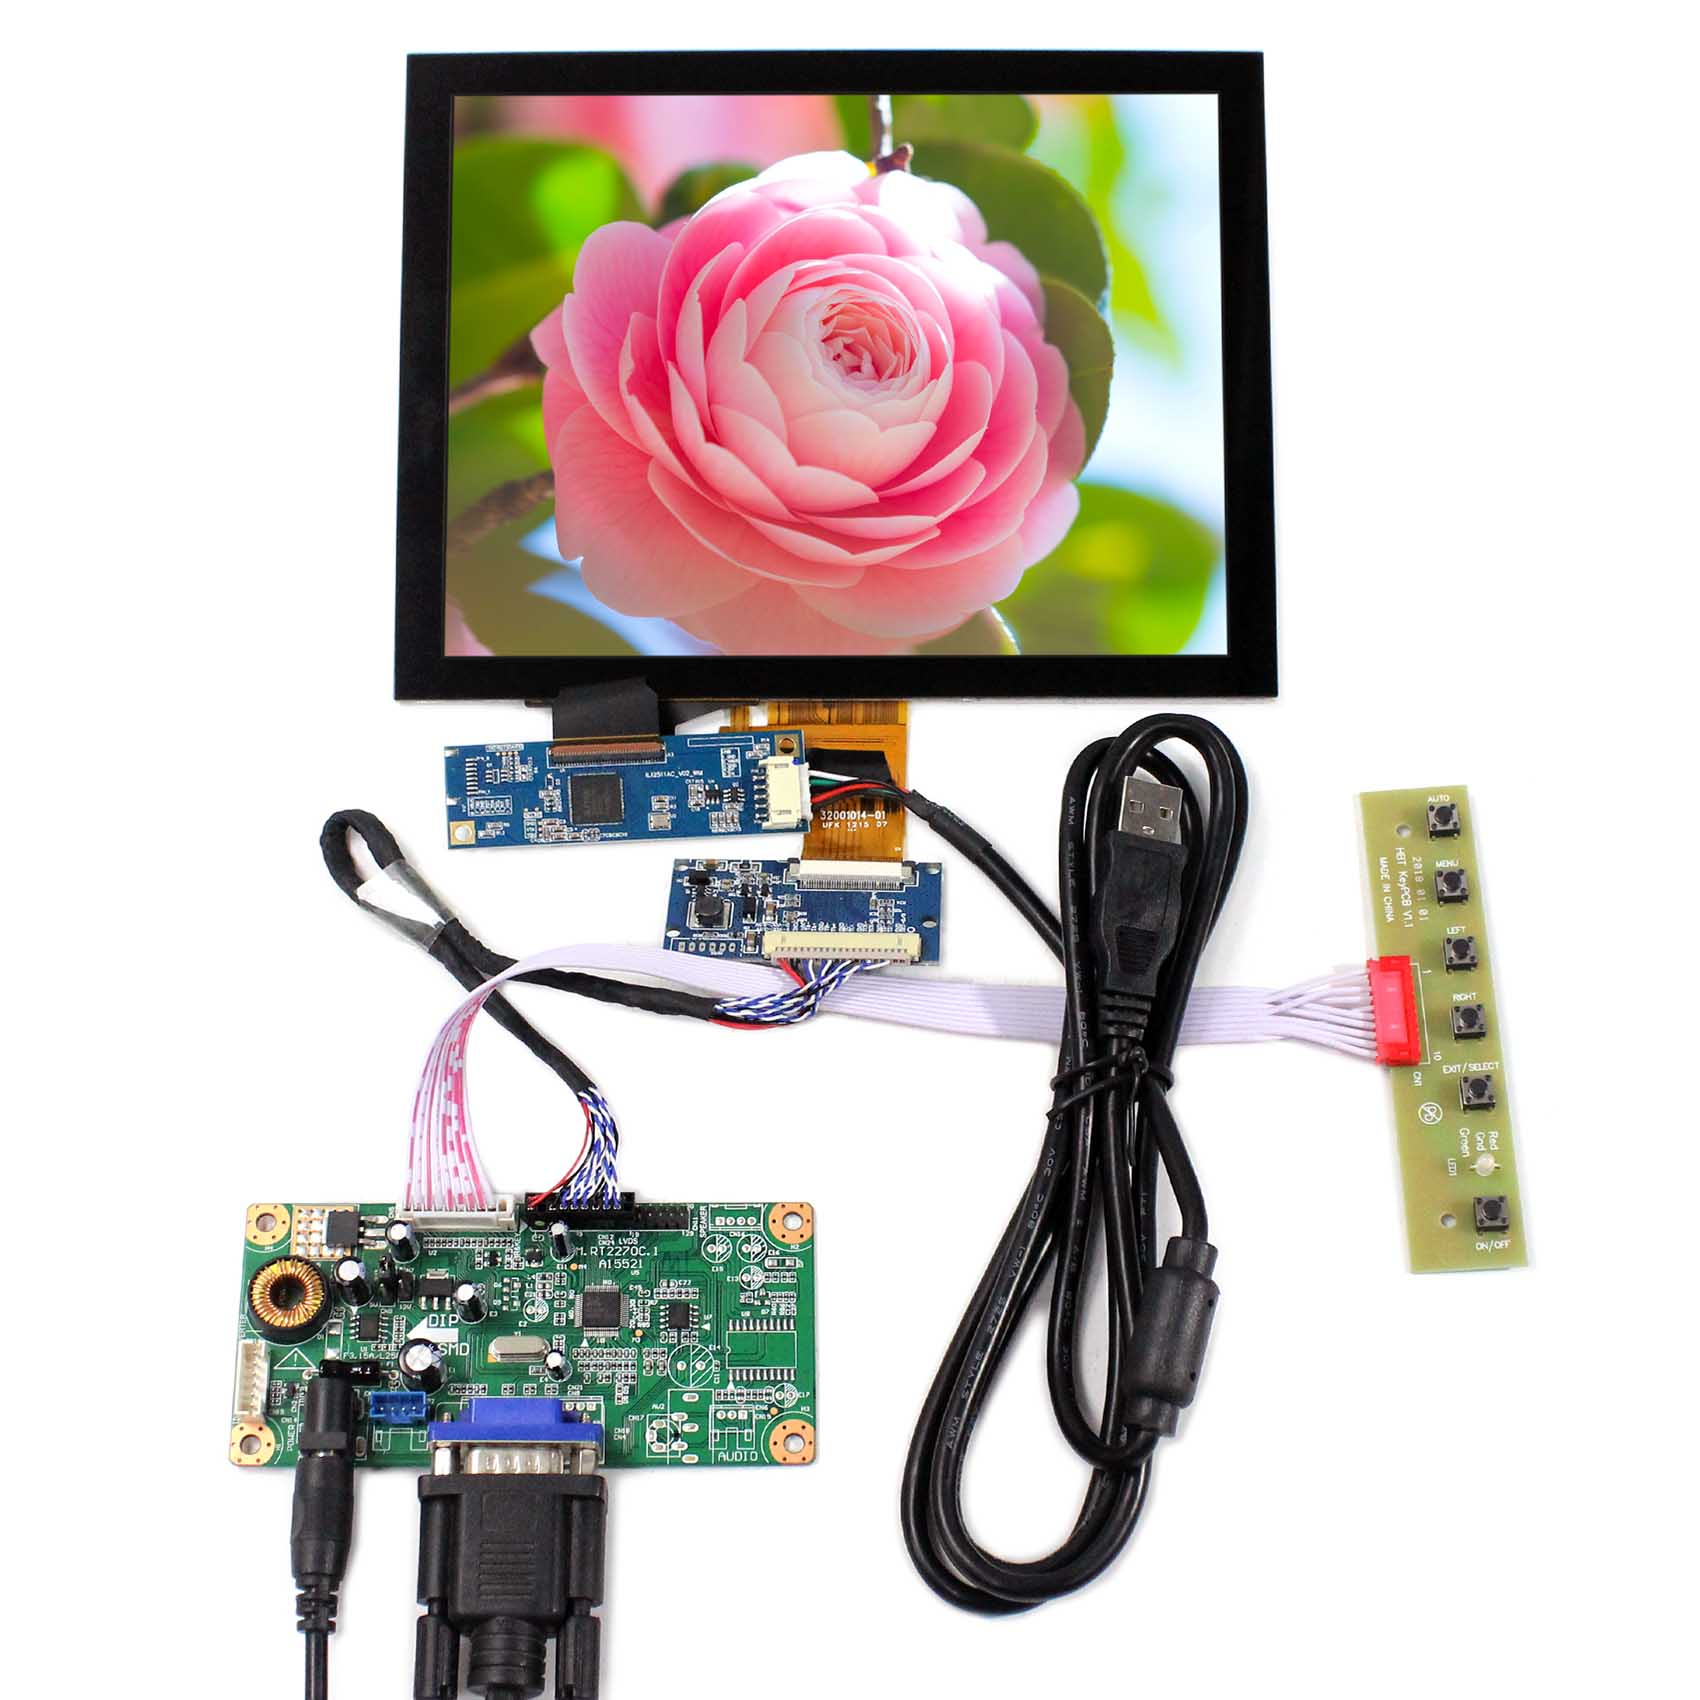 VS080TC-A1 Backlight WLED VGA LCD Controller Board RT2270C-A 8inch Capacitive Touch LCD Screen 1024x768 EJ080NA-04C цена и фото